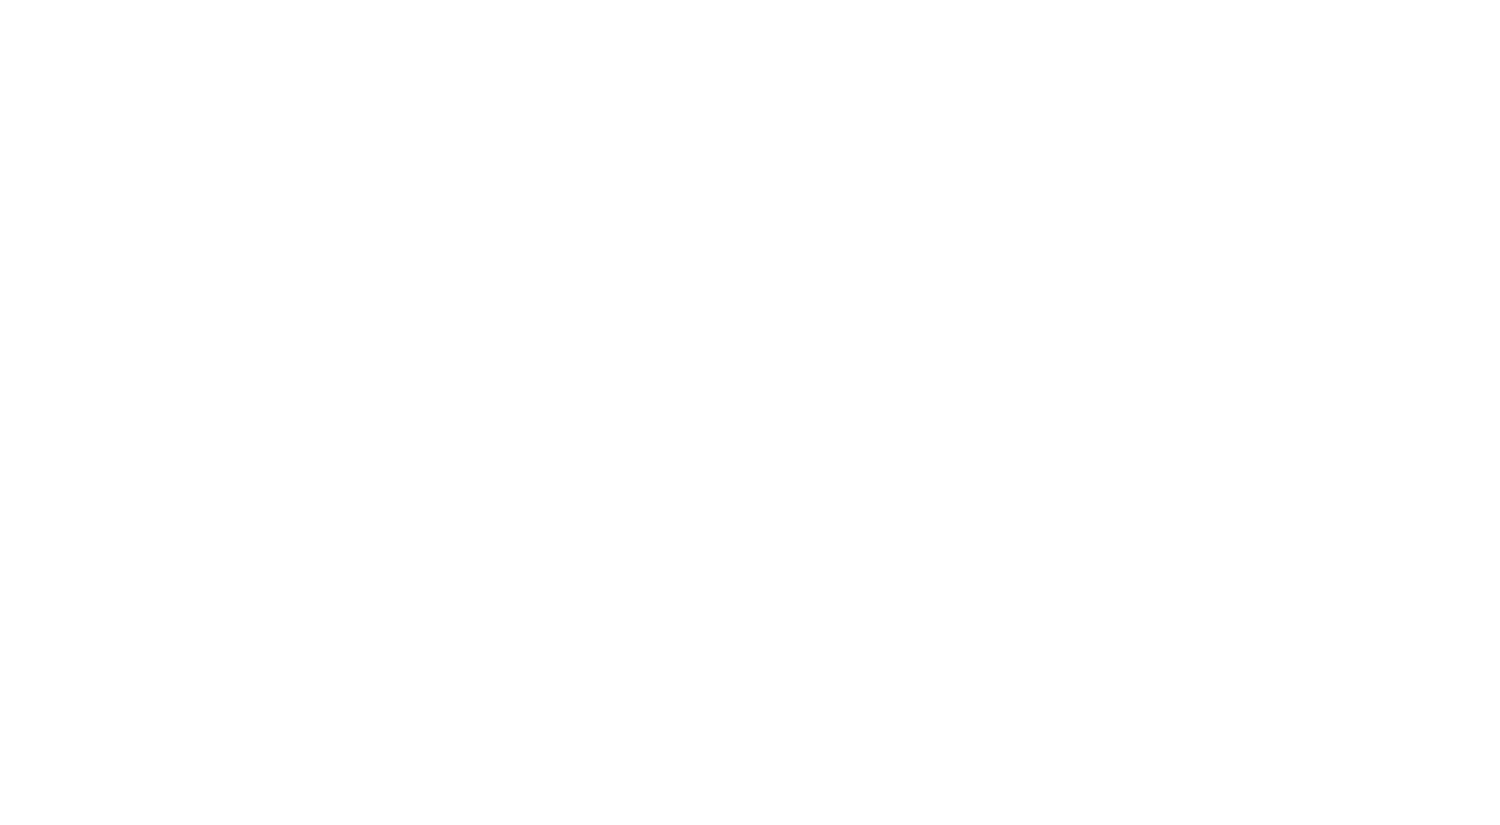 move physio pilates